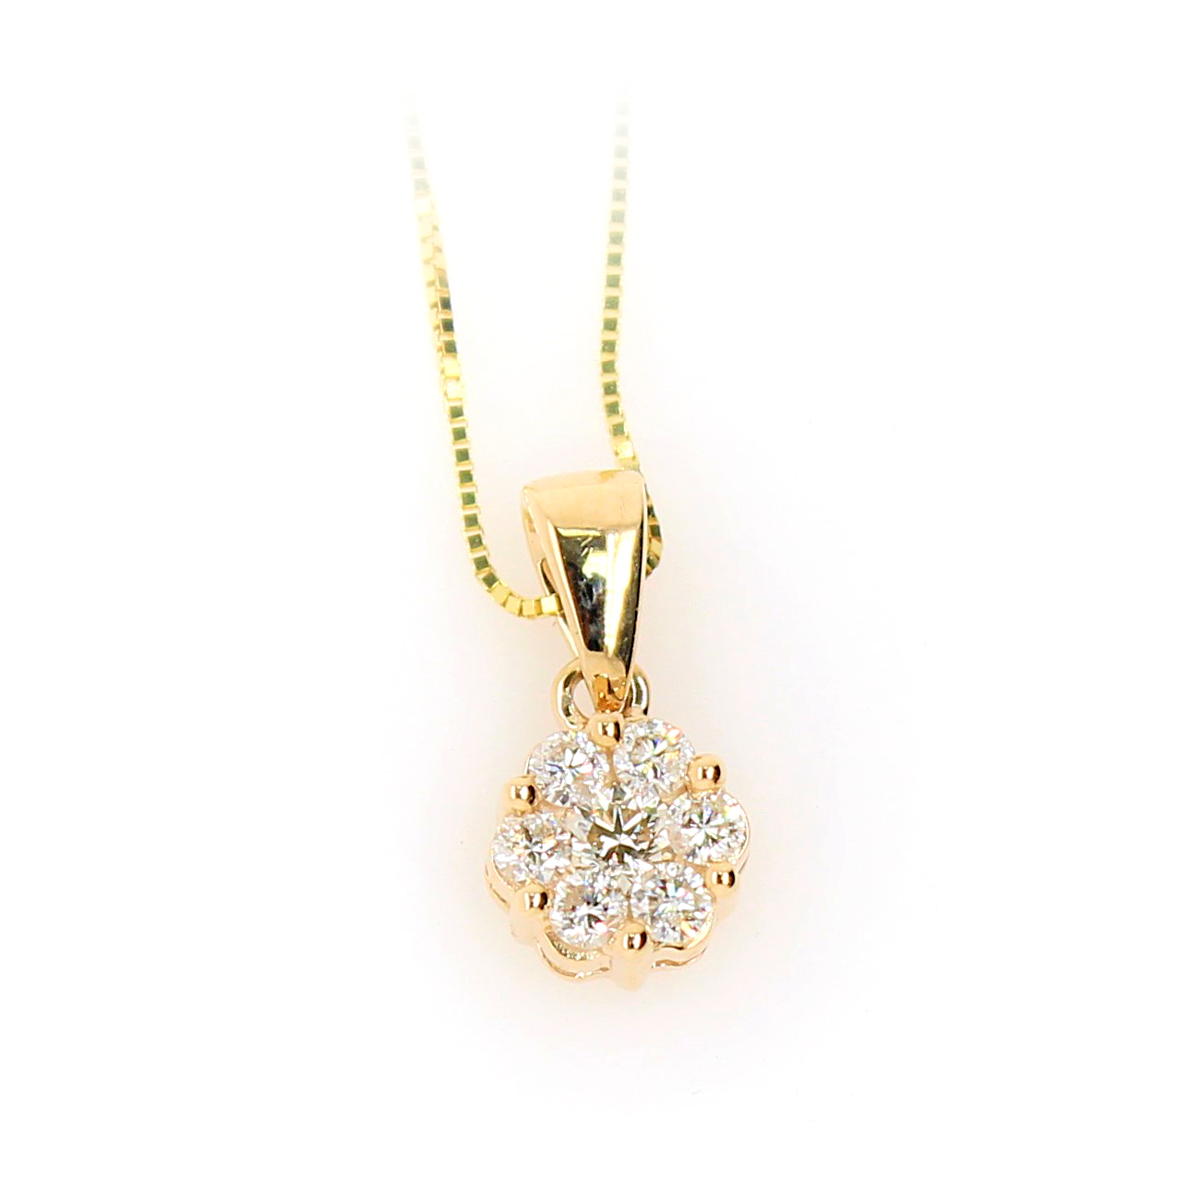 Shefi Diamonds 10 Karat Yellow Gold Cluster Diamond Pendant Necklace